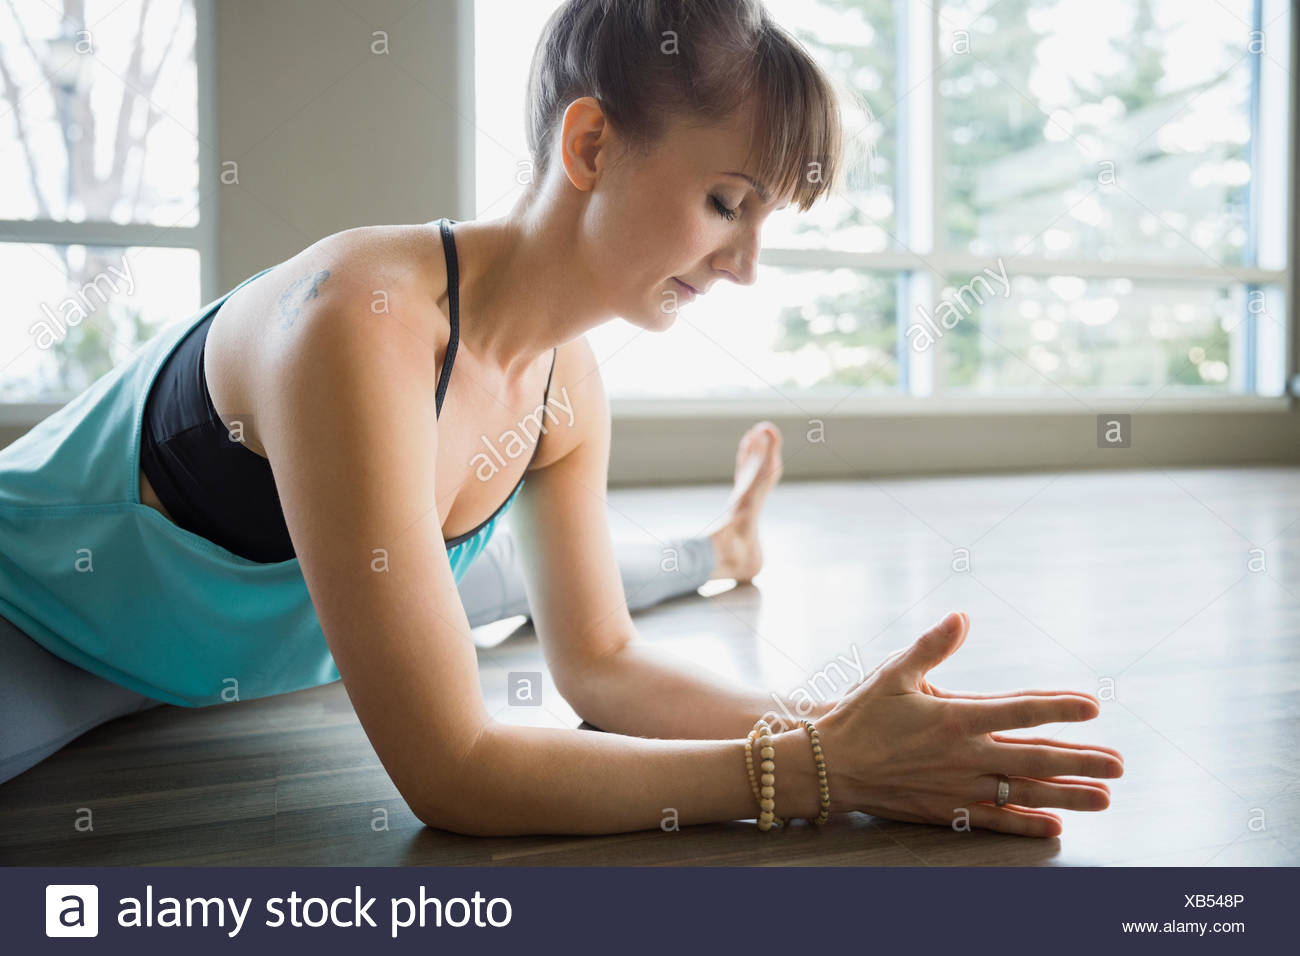 Femme souple avec jambes practicing yoga Photo Stock